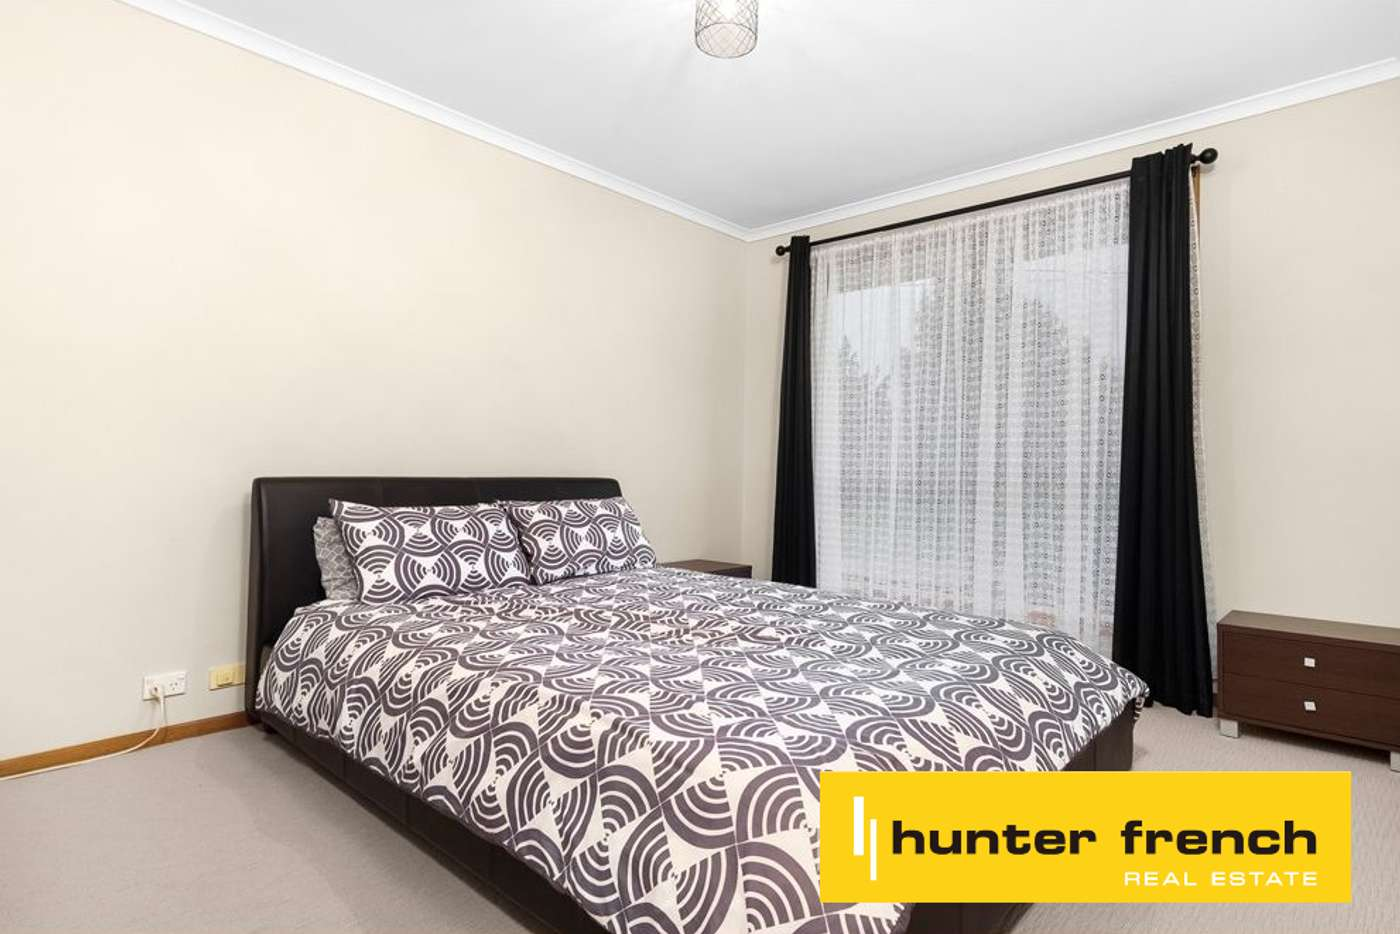 Fifth view of Homely house listing, 4 Tamboritha Place, Hoppers Crossing VIC 3029